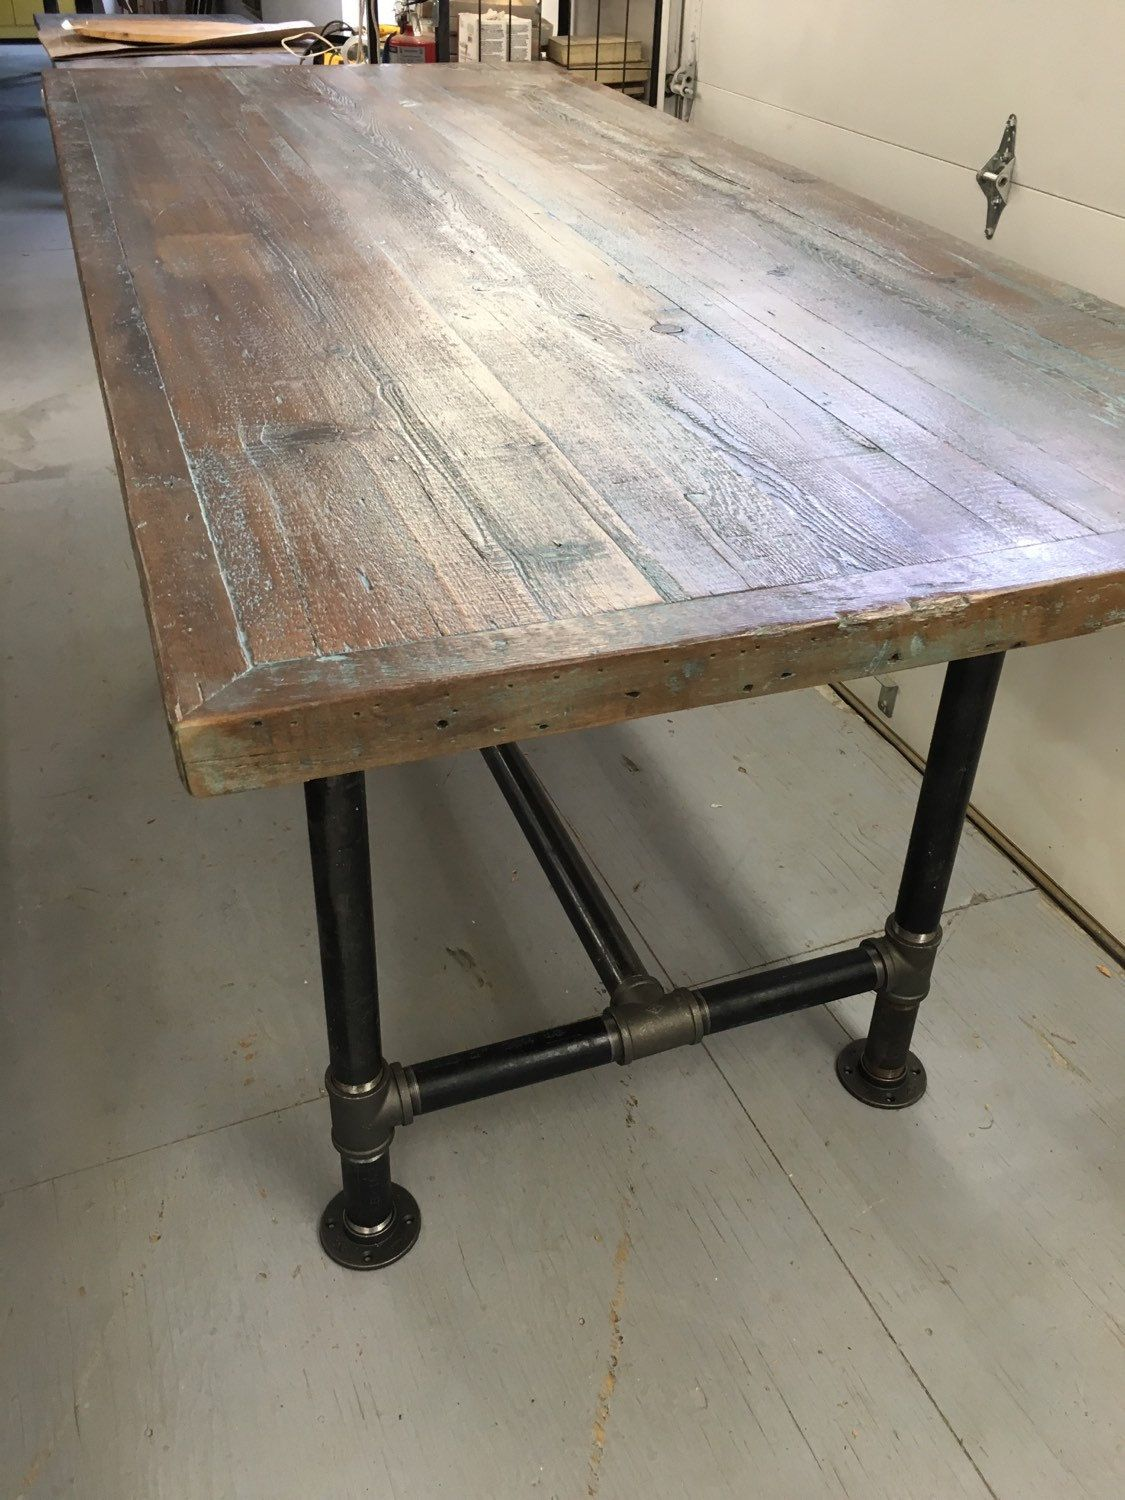 Delicieux Reclaimed Wood Table 30 X 70 With 1 1/4 Pipe Base Counter Height Base Reclaimed  Wood From NJ And PA Barns Wood Is Sanded And Sealed For A Gorgeous Rustic  ...